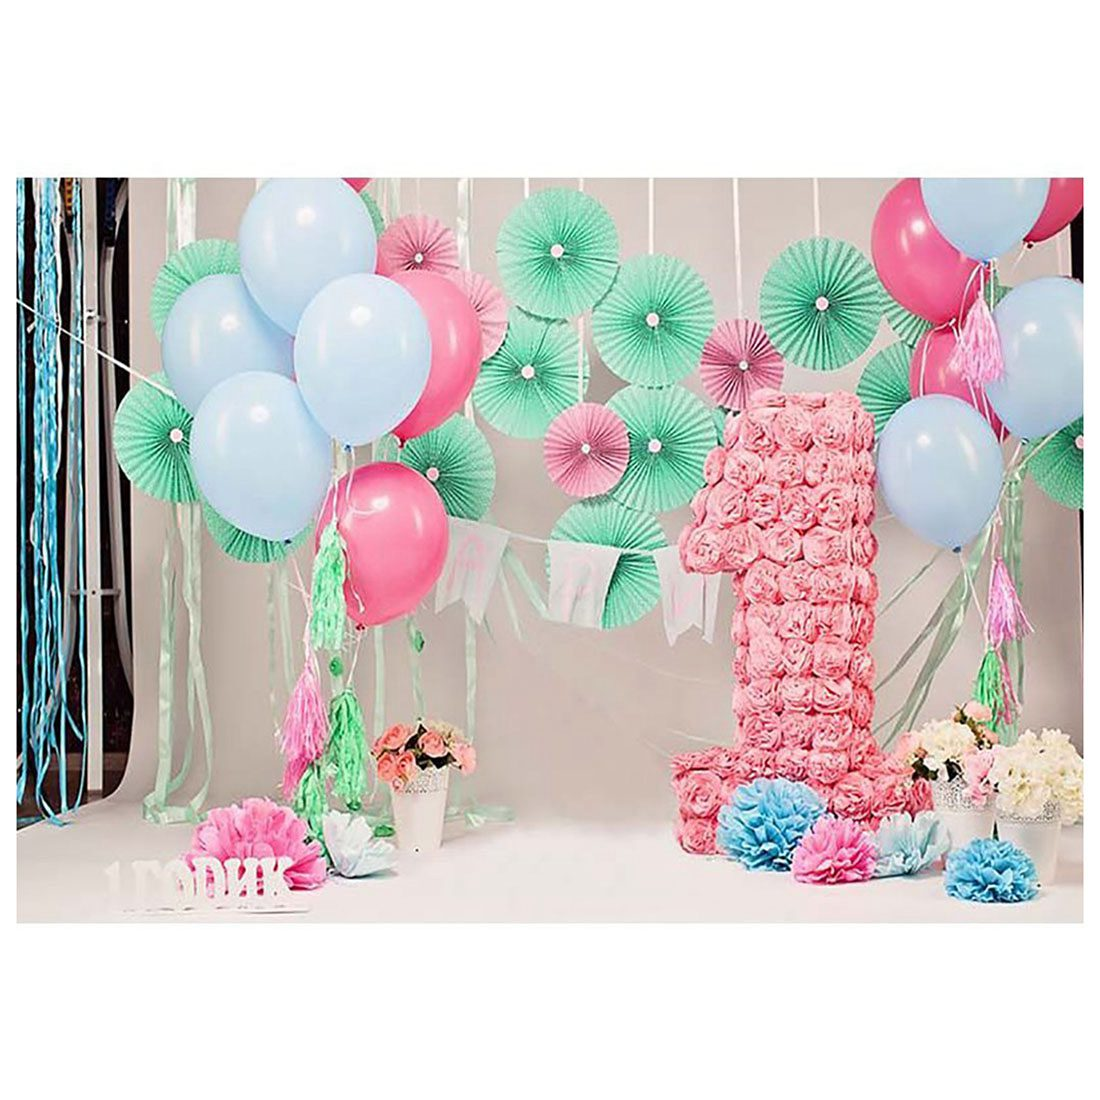 7*5ft Photography Backdrops Party Pink Balloons Florals Girls 1st birthday banner photo studio booth background photocall allenjoy girls birthday backdrops background pink pig bunting party banner newborn invitation baby shower party customize